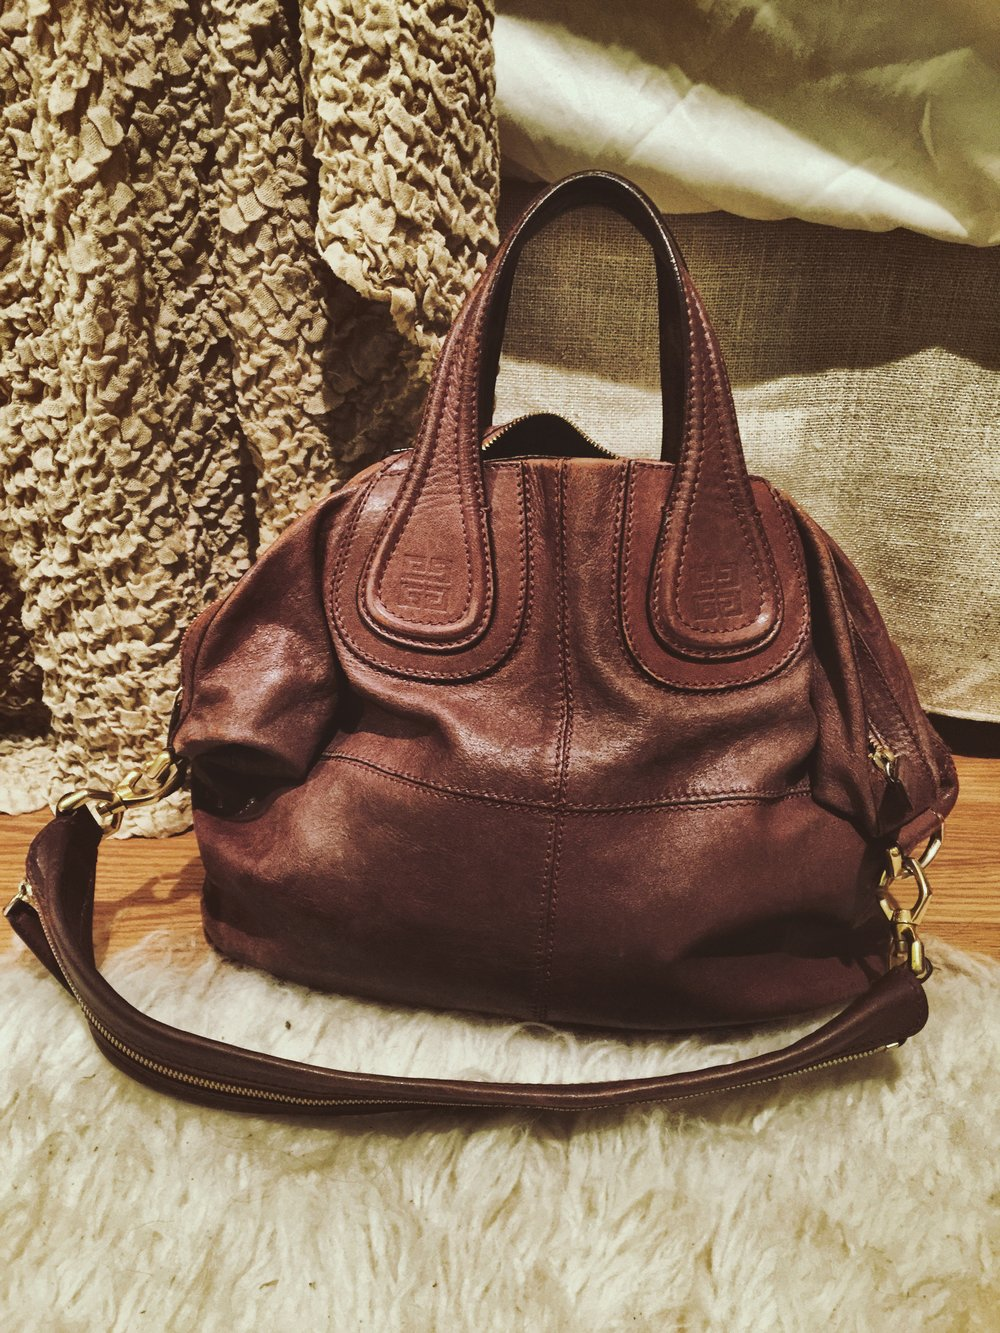 GIVENCHY Lambskin Medium Nightingale in Burgundy purchased from Fashionphile in 2014.